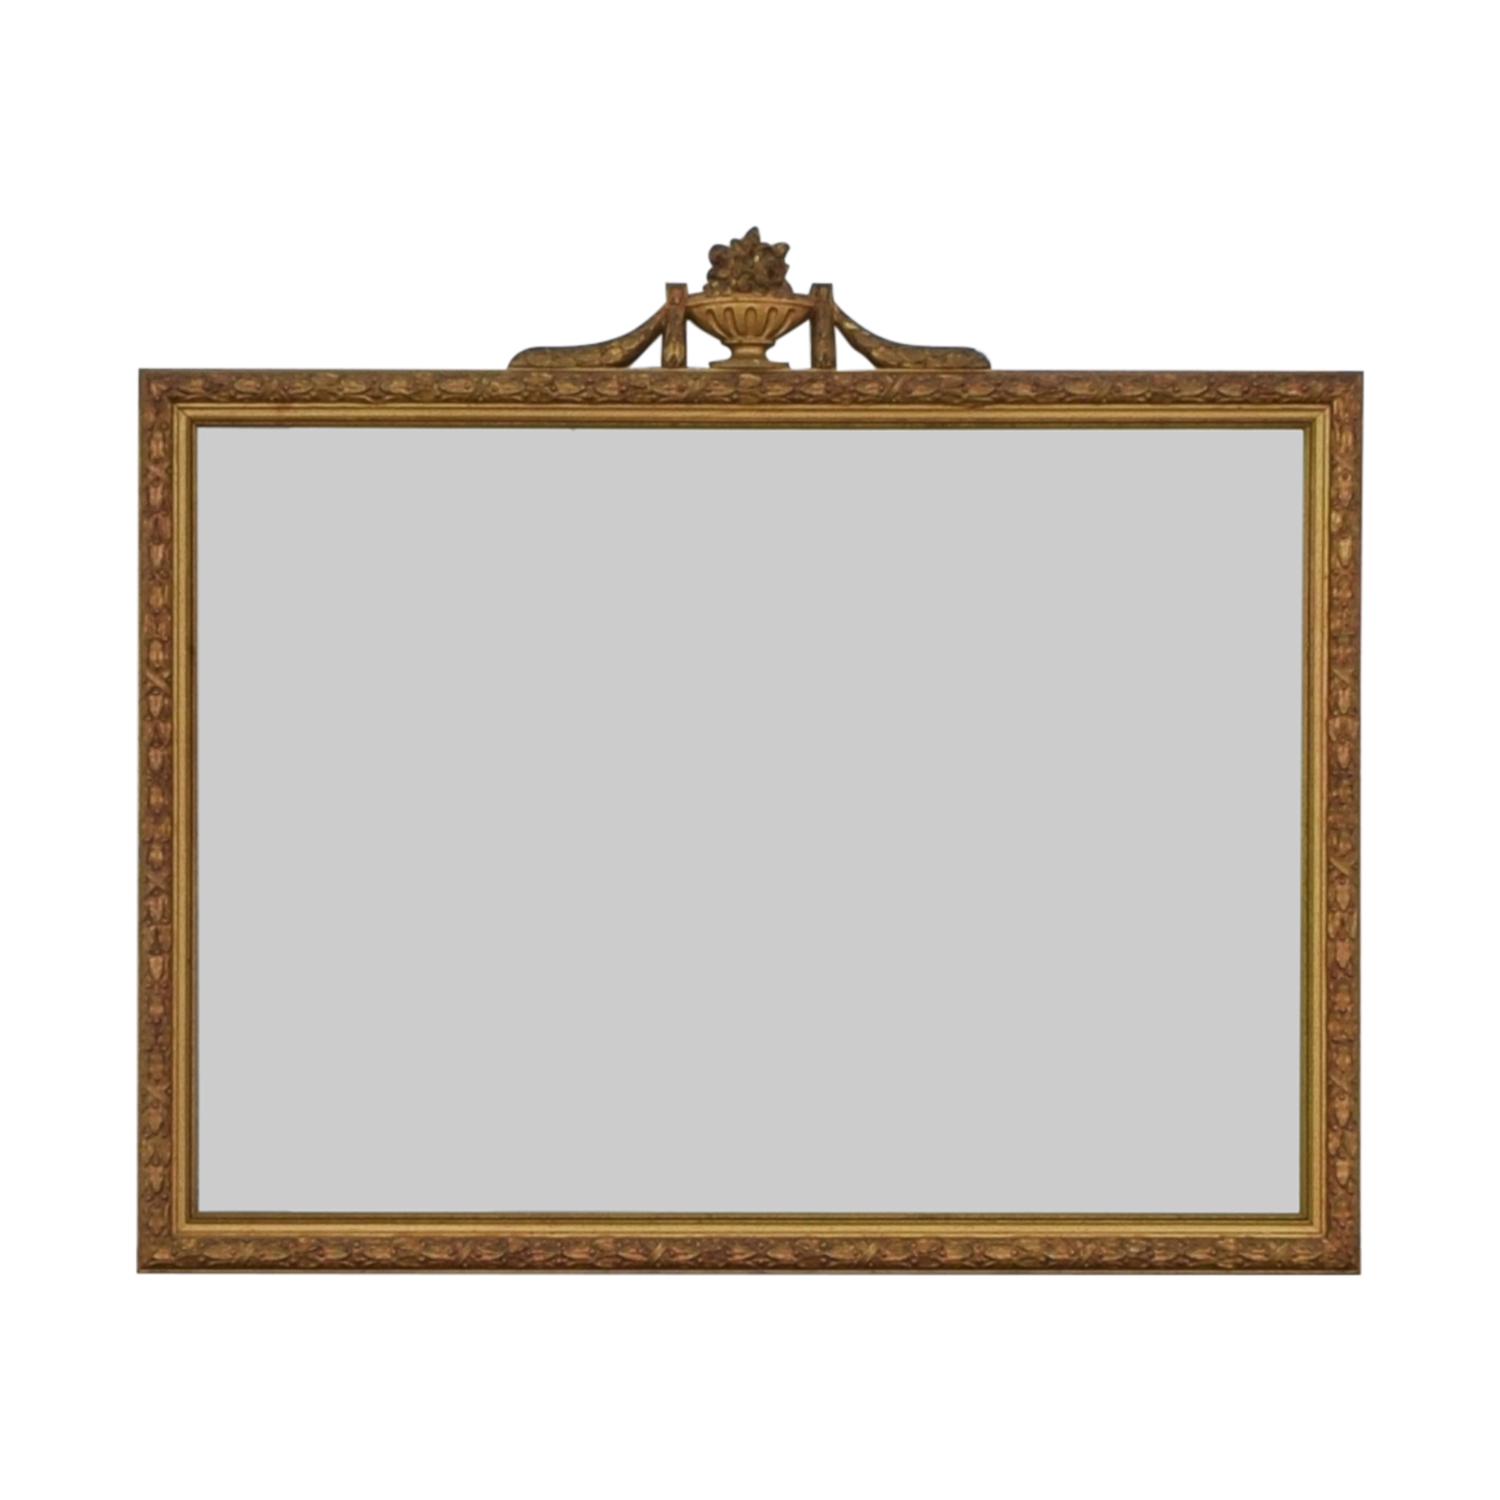 White Seid Products Vintage Framed Mirror / Decor